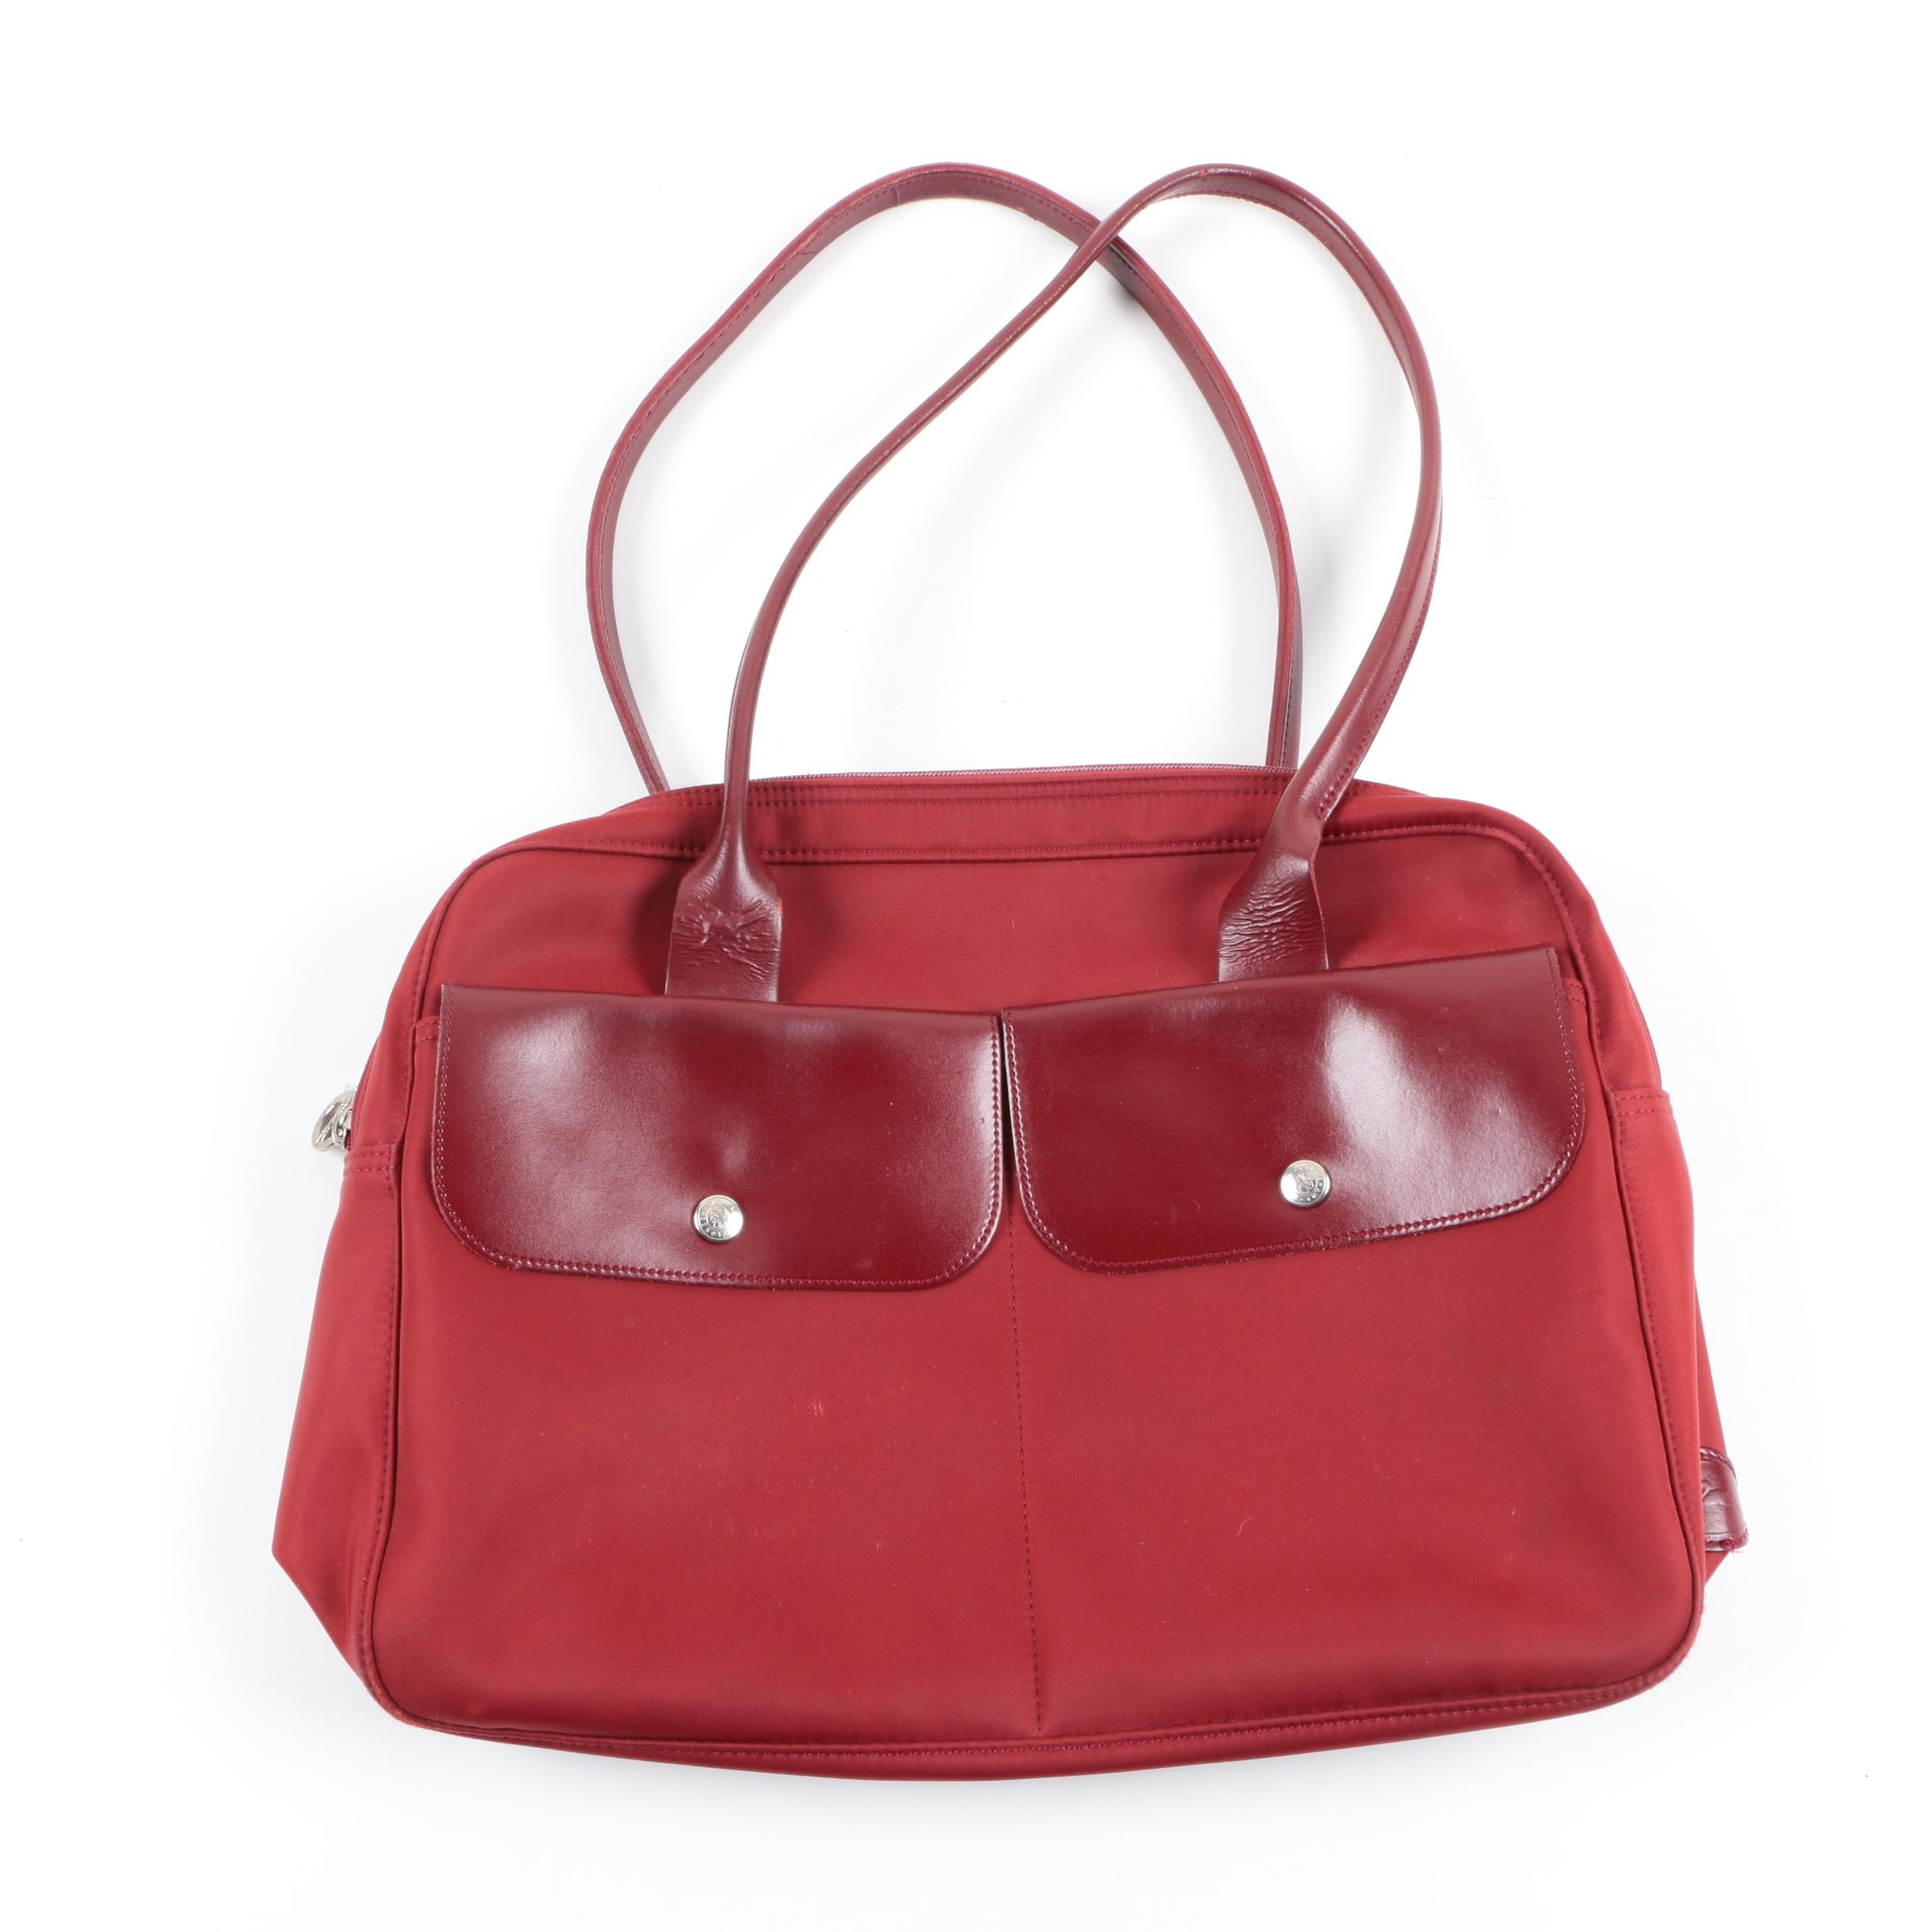 Longchamp Red Nylon and Leather Tote